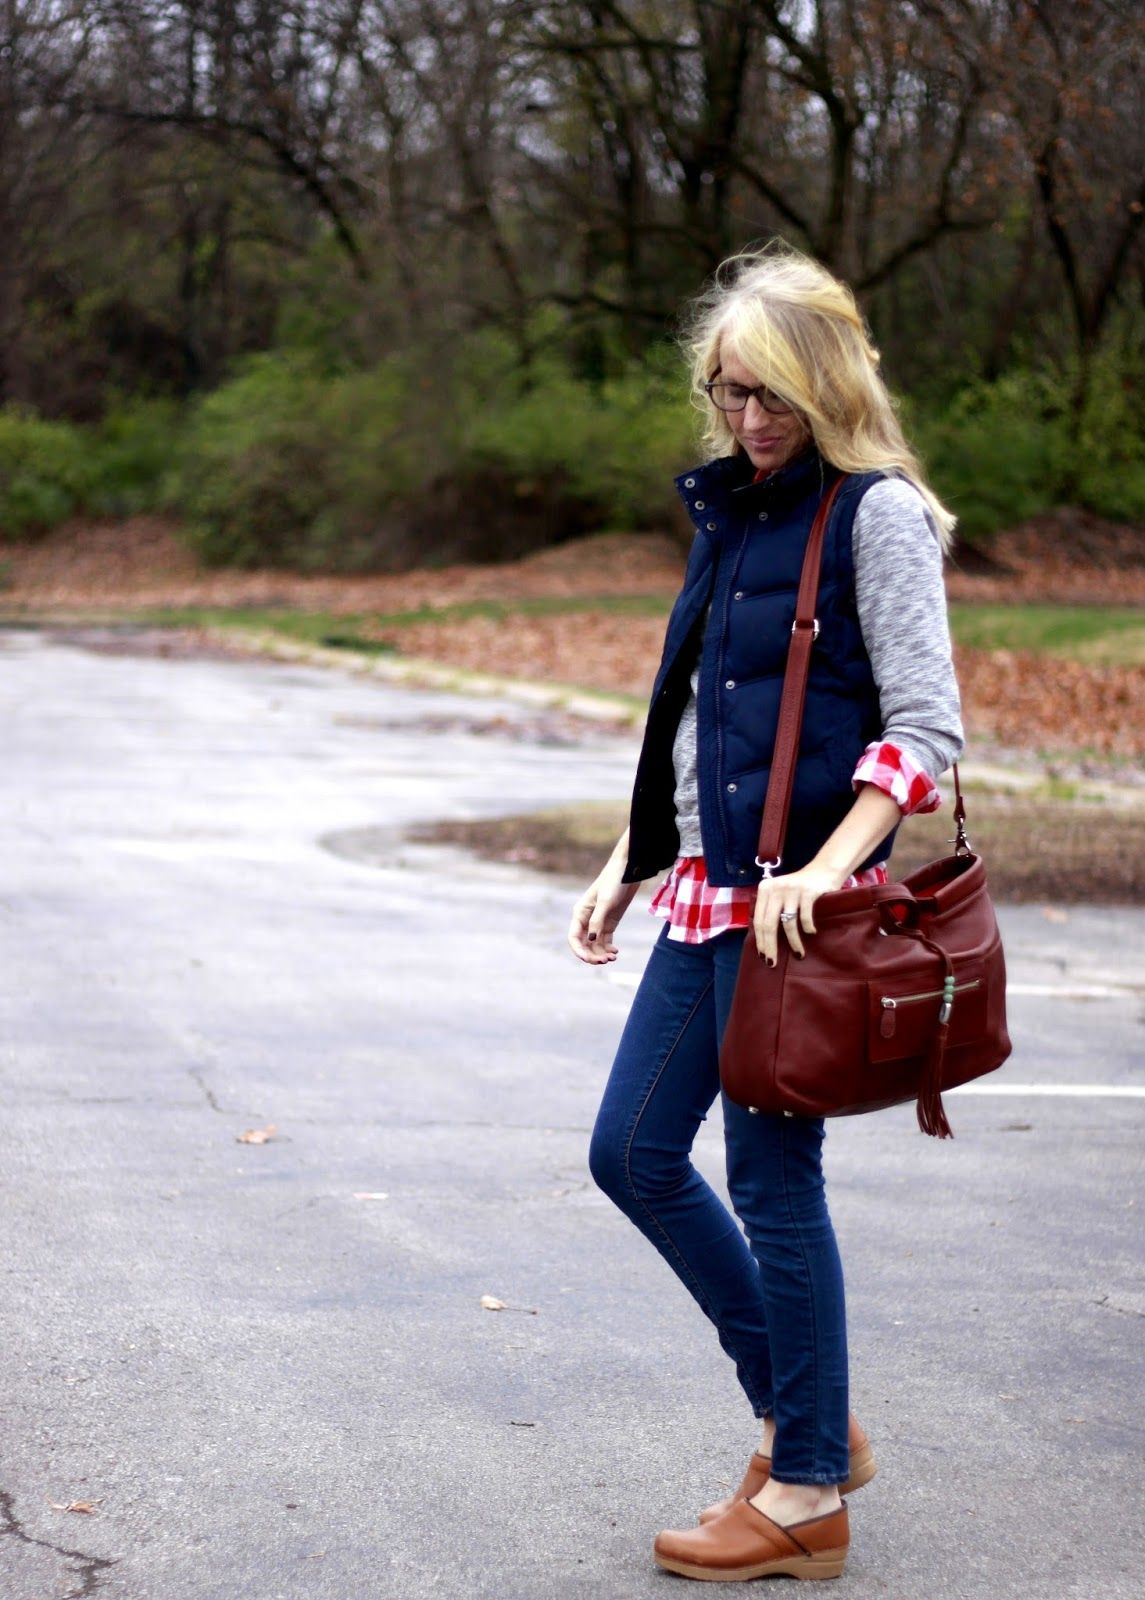 cute outfit! Love how this doesn't look like a diaper bag at all